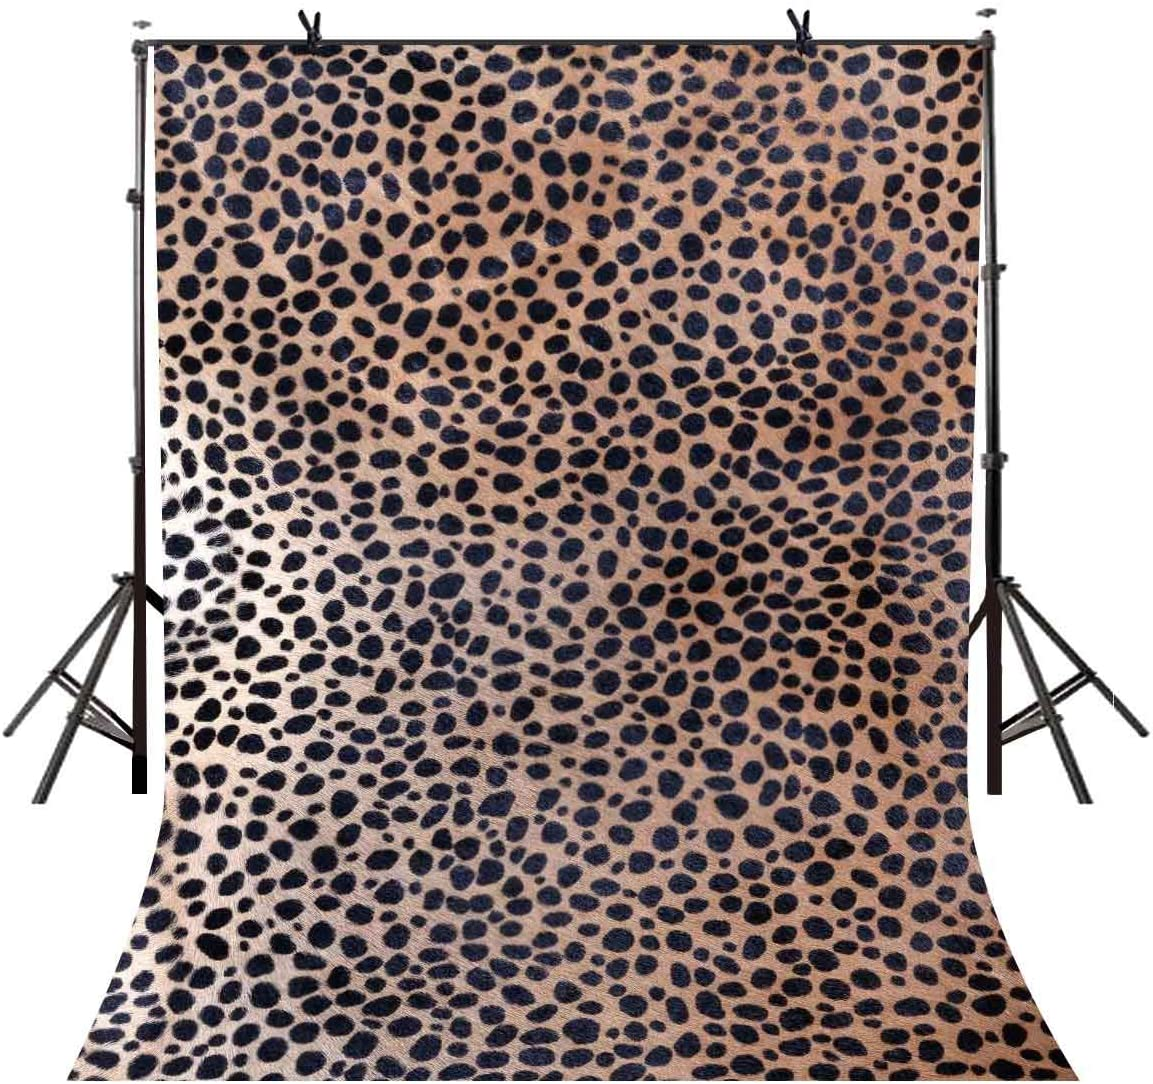 LYLYCTY 5x7ft Leopard Backdrop Bottom of The Yellow Brown Black Spots Photography Backdrop Polyester Photo Photography Background Interior Decoration Wallpaper LYGE890